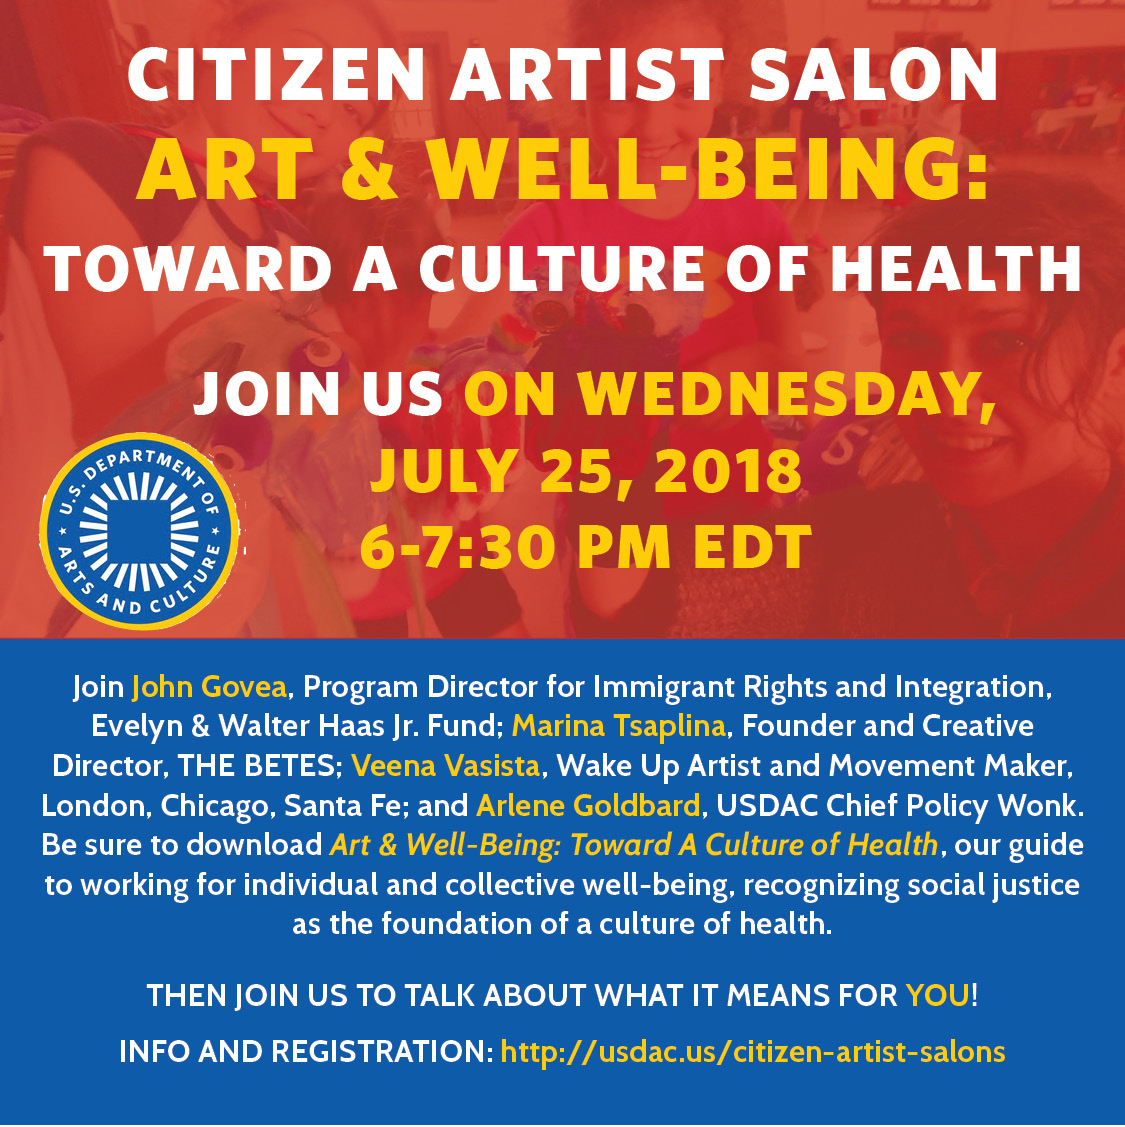 Citizen Artist Salon: Art & Well-Being — U.S. Department of Arts and Culture